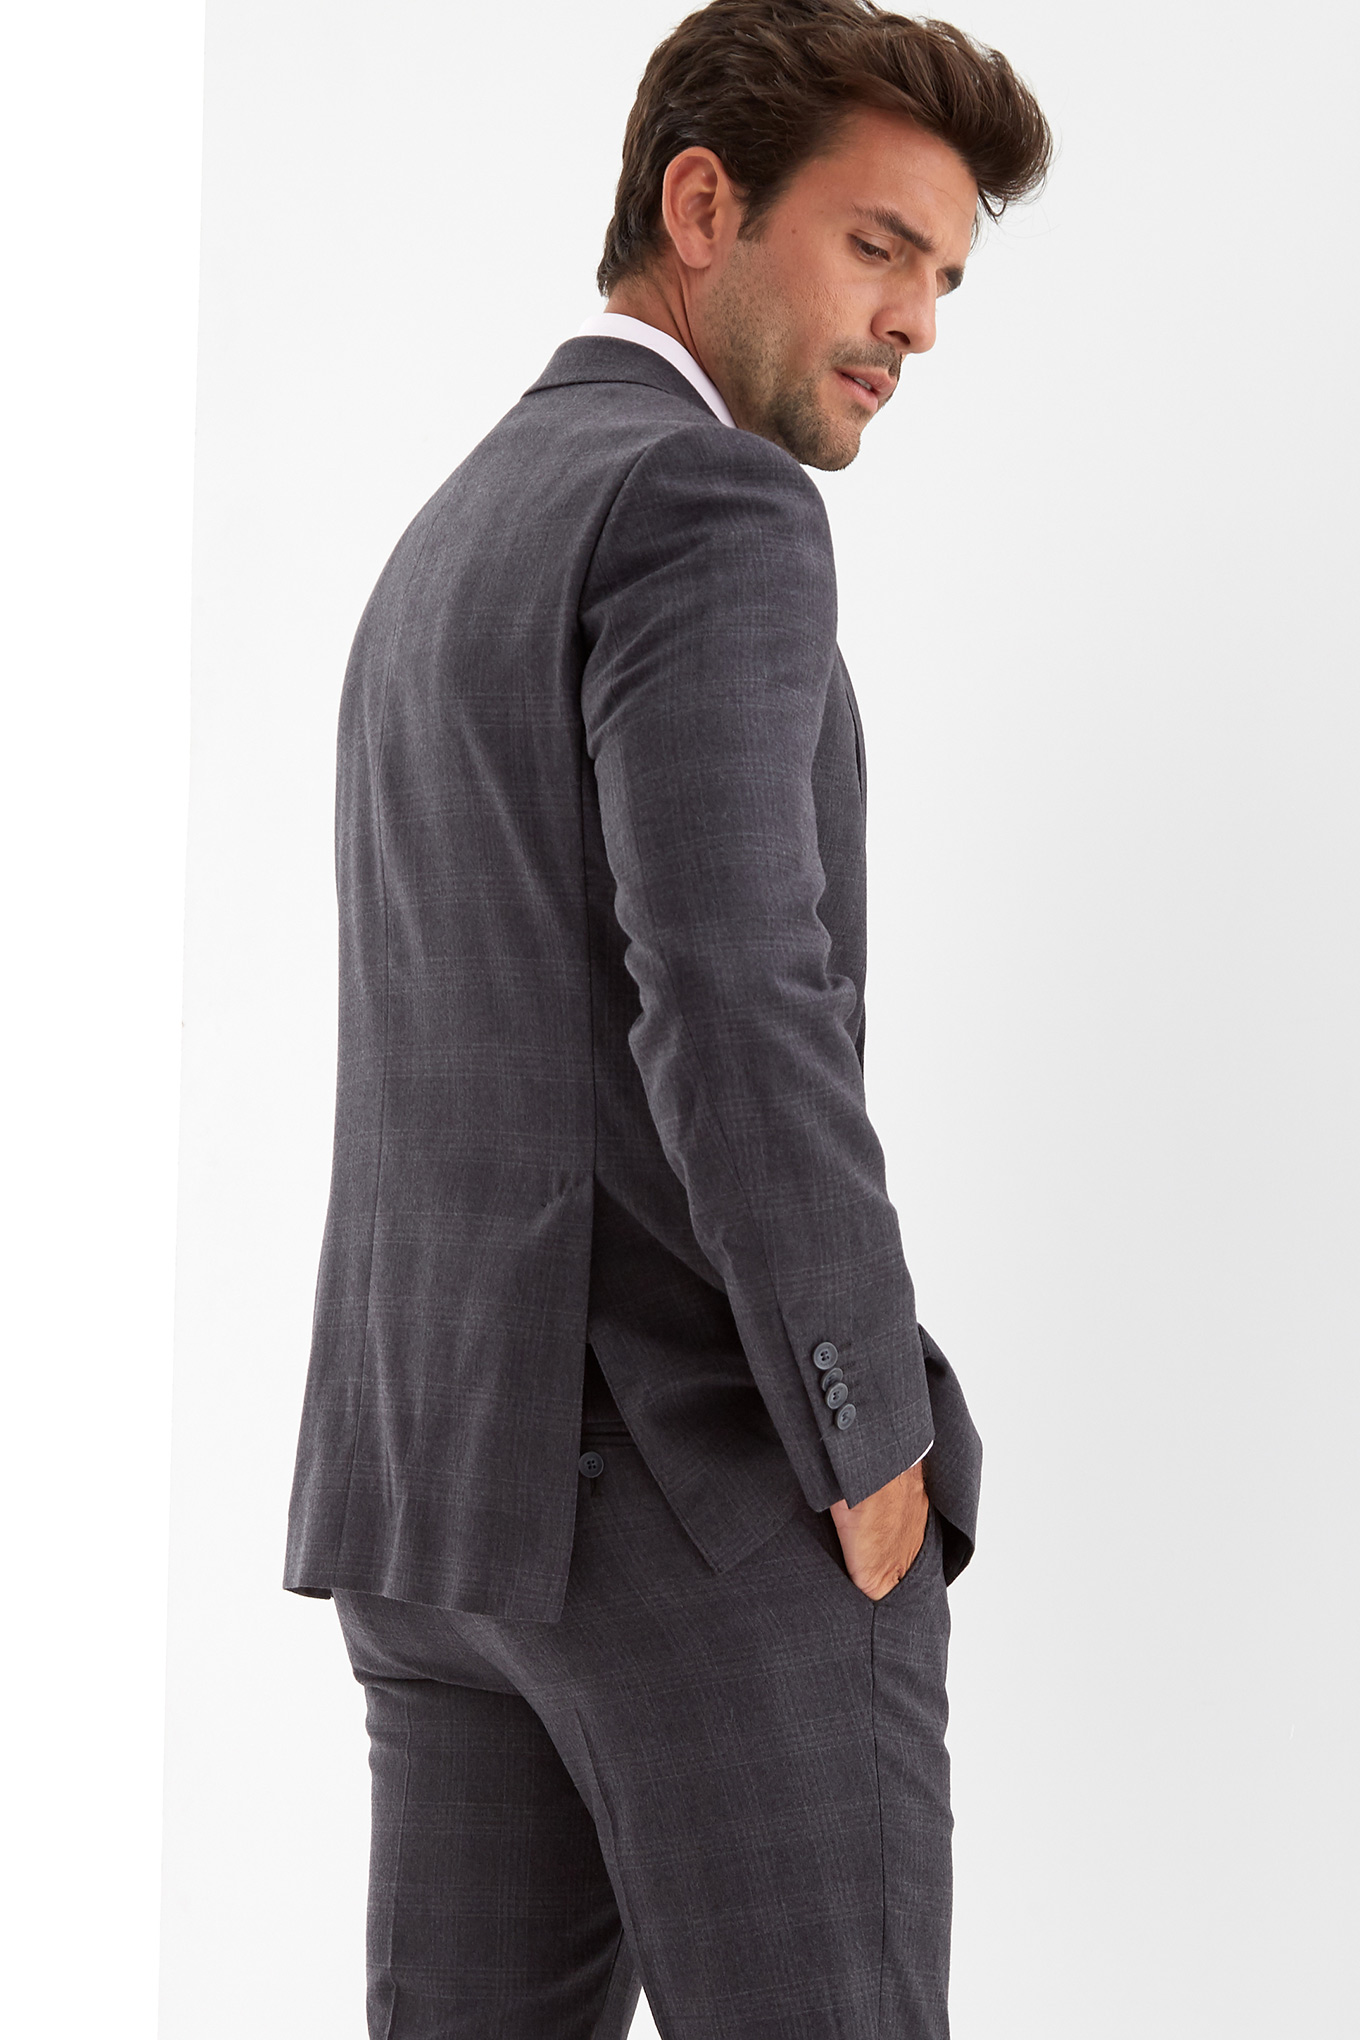 Suit with Vest Dark Grey Classic Man